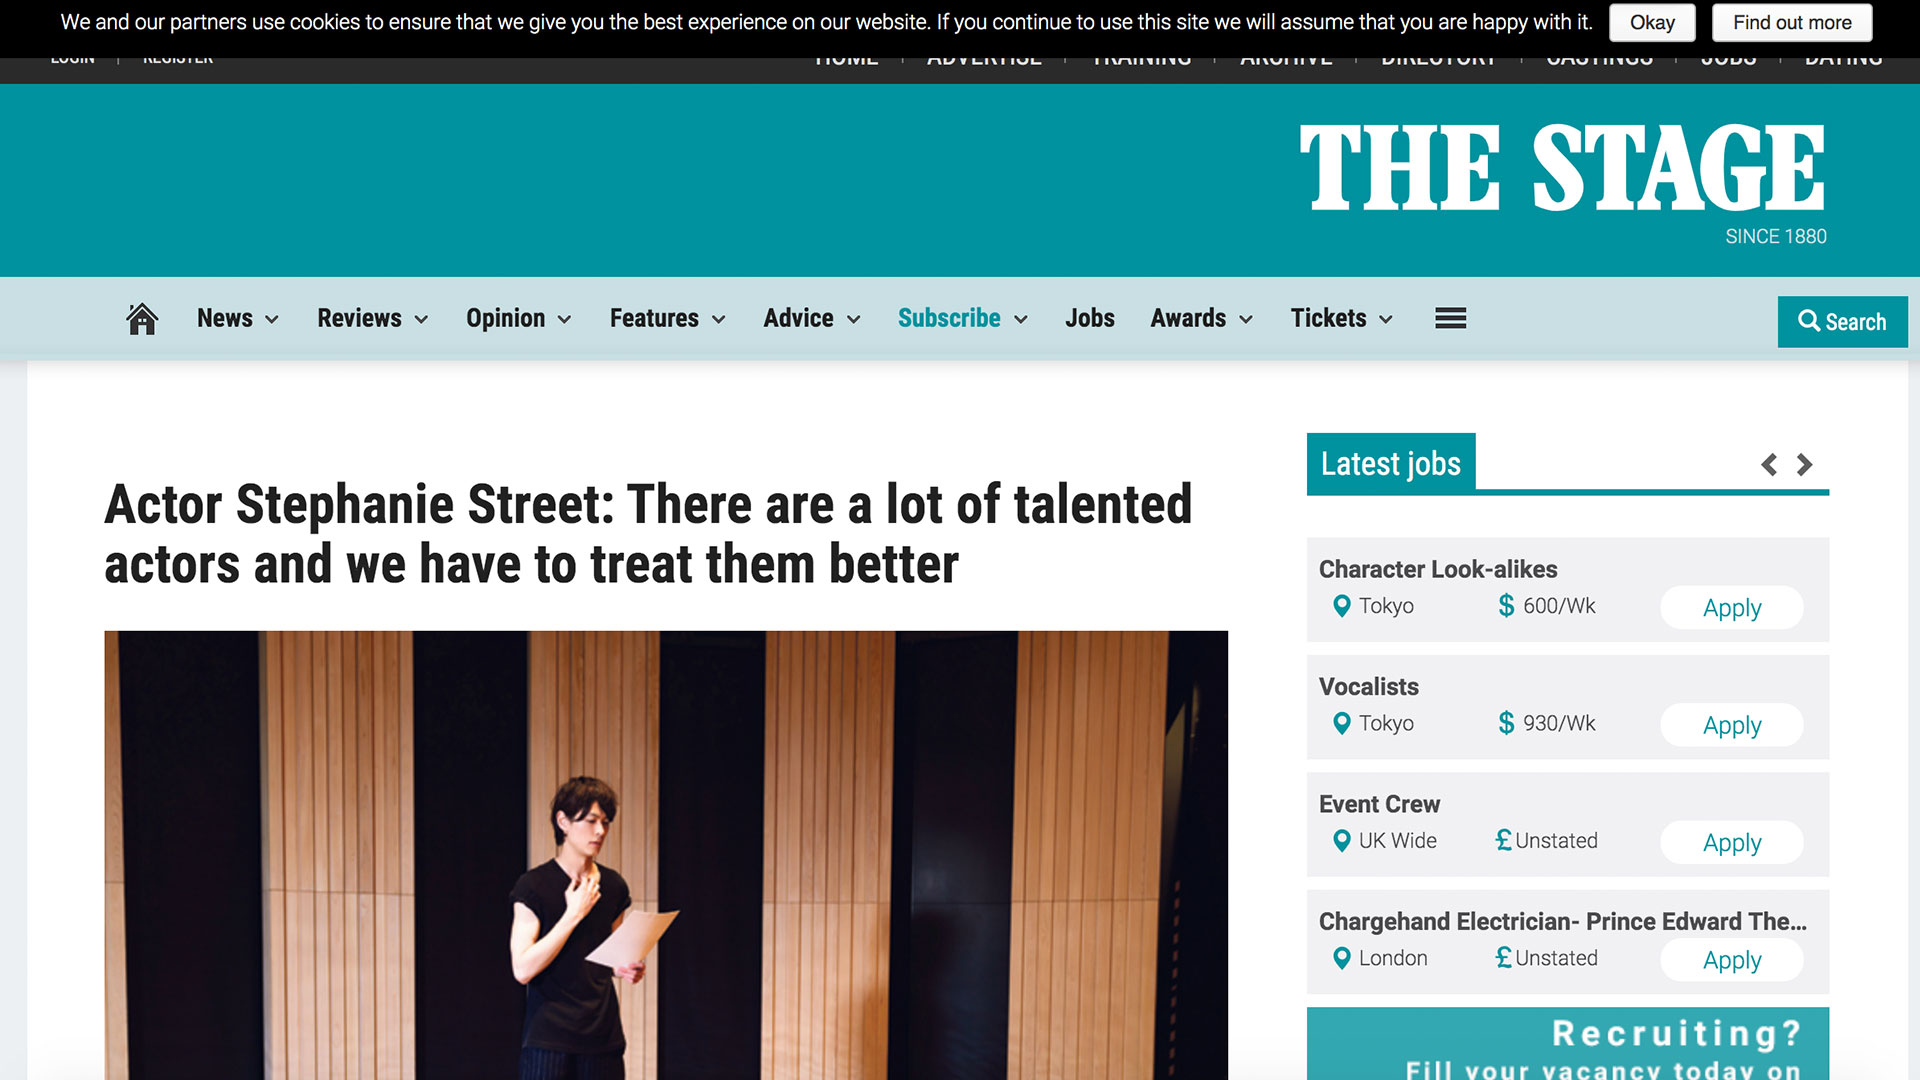 Fairness Rocks News Actor Stephanie Street: There are a lot of talented actors and we have to treat them better